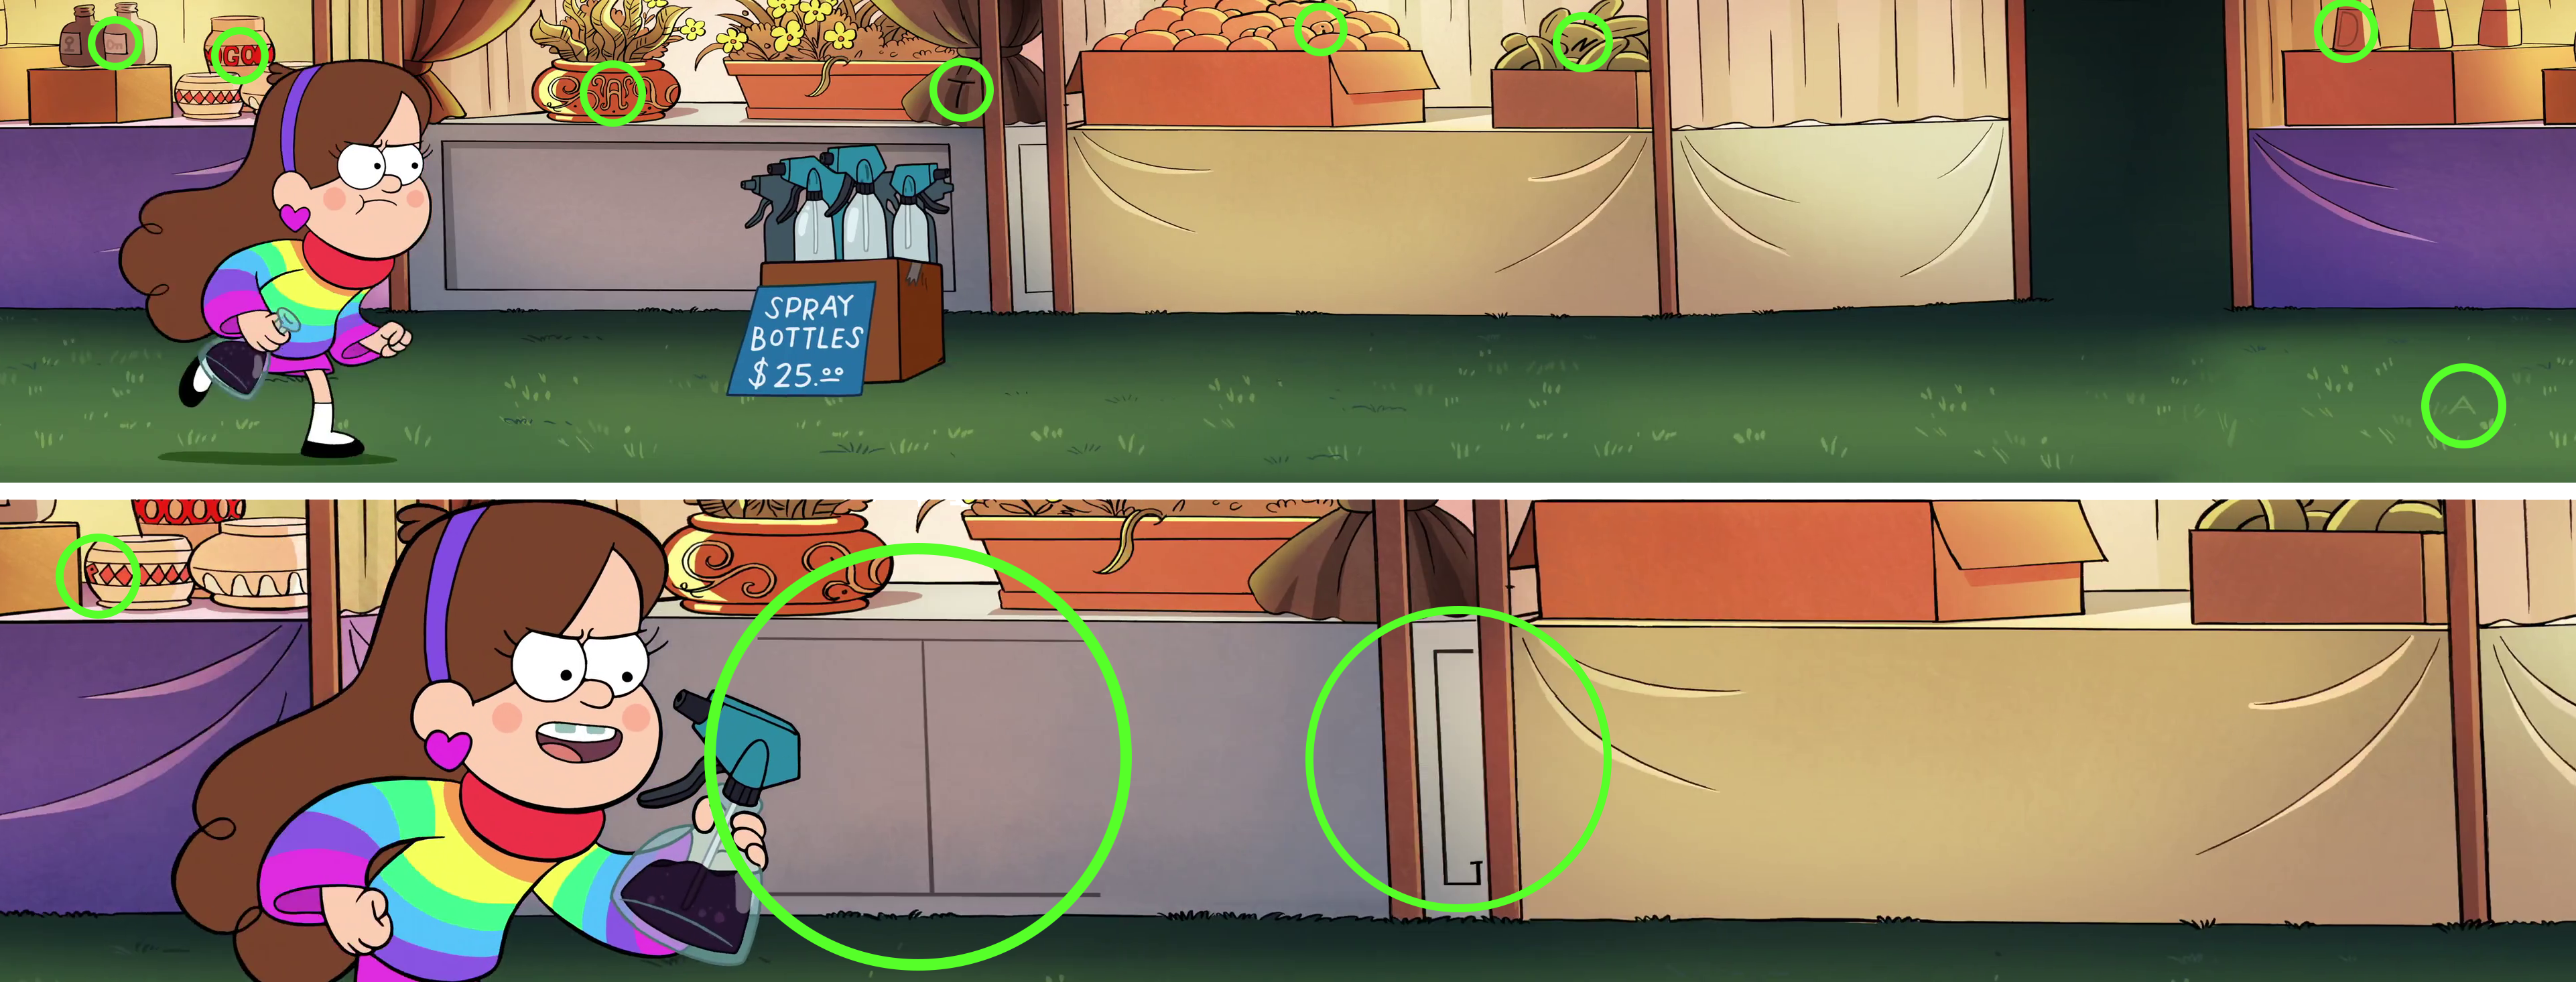 Gravity falls hidden messages in credits 47613 dfiles